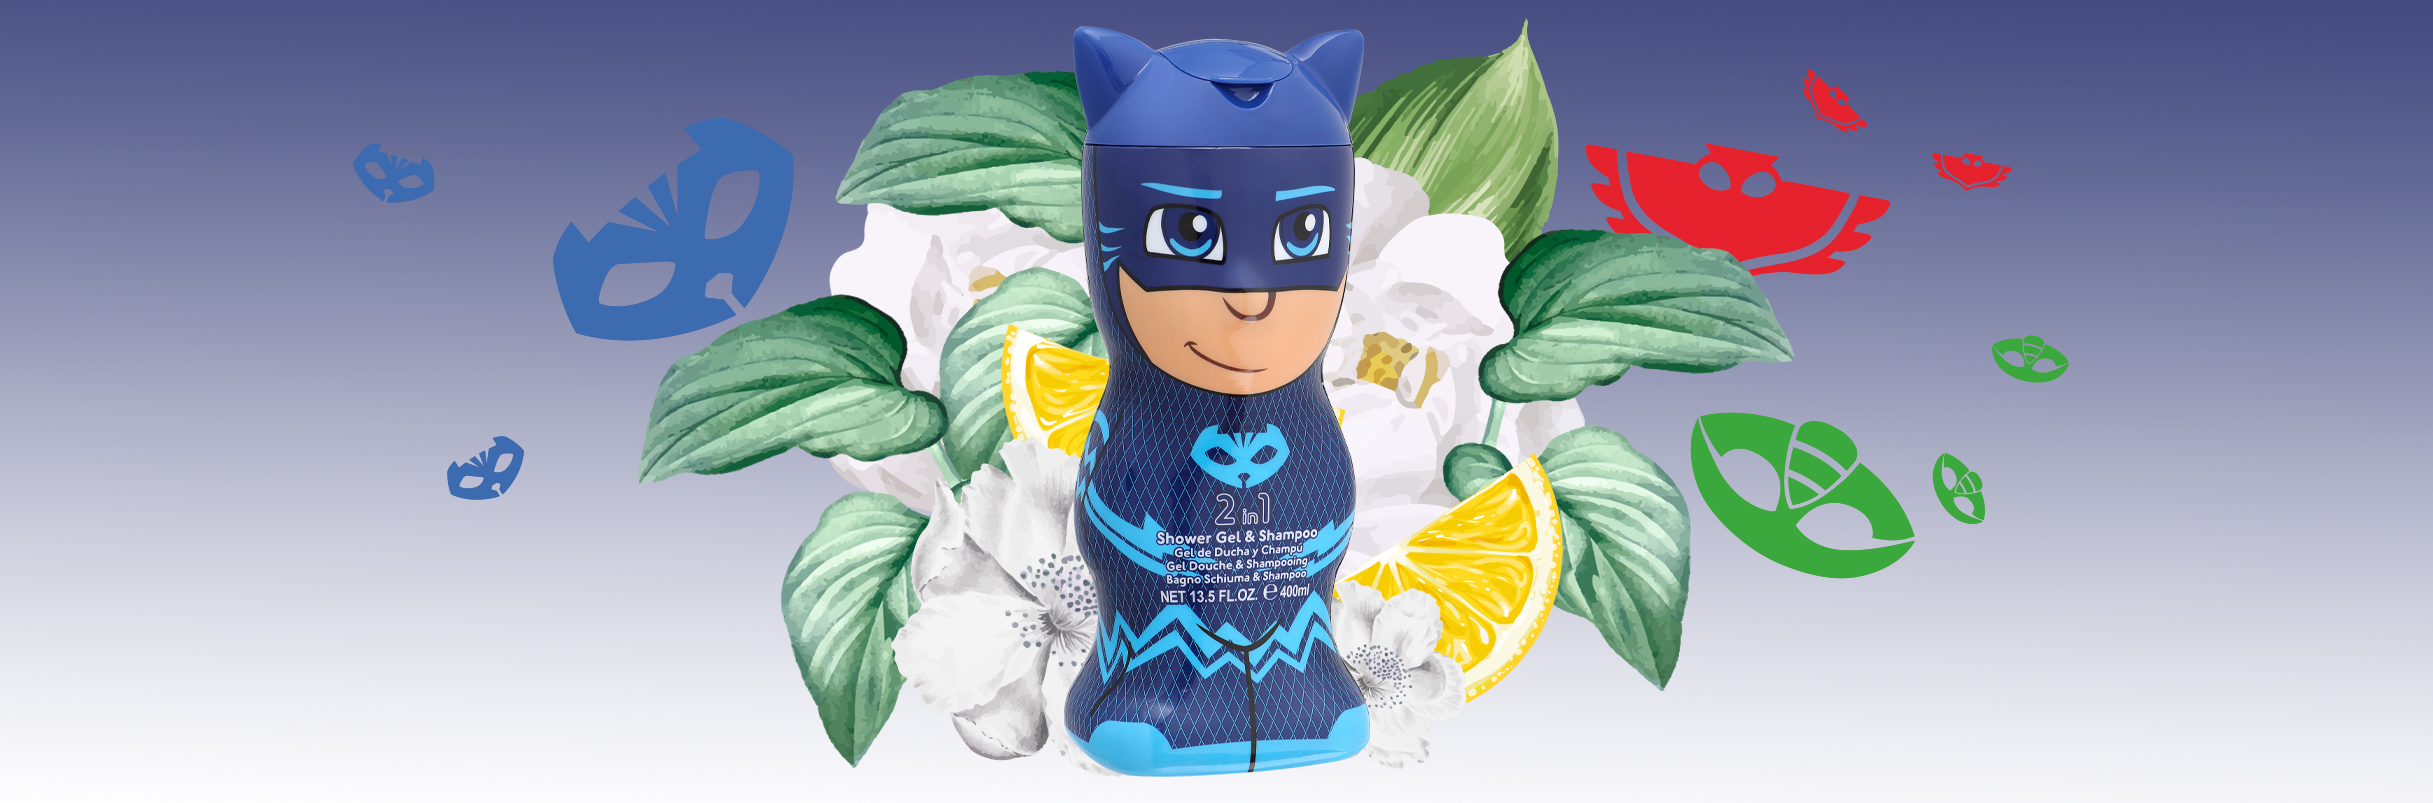 The PJ Masks fragrances